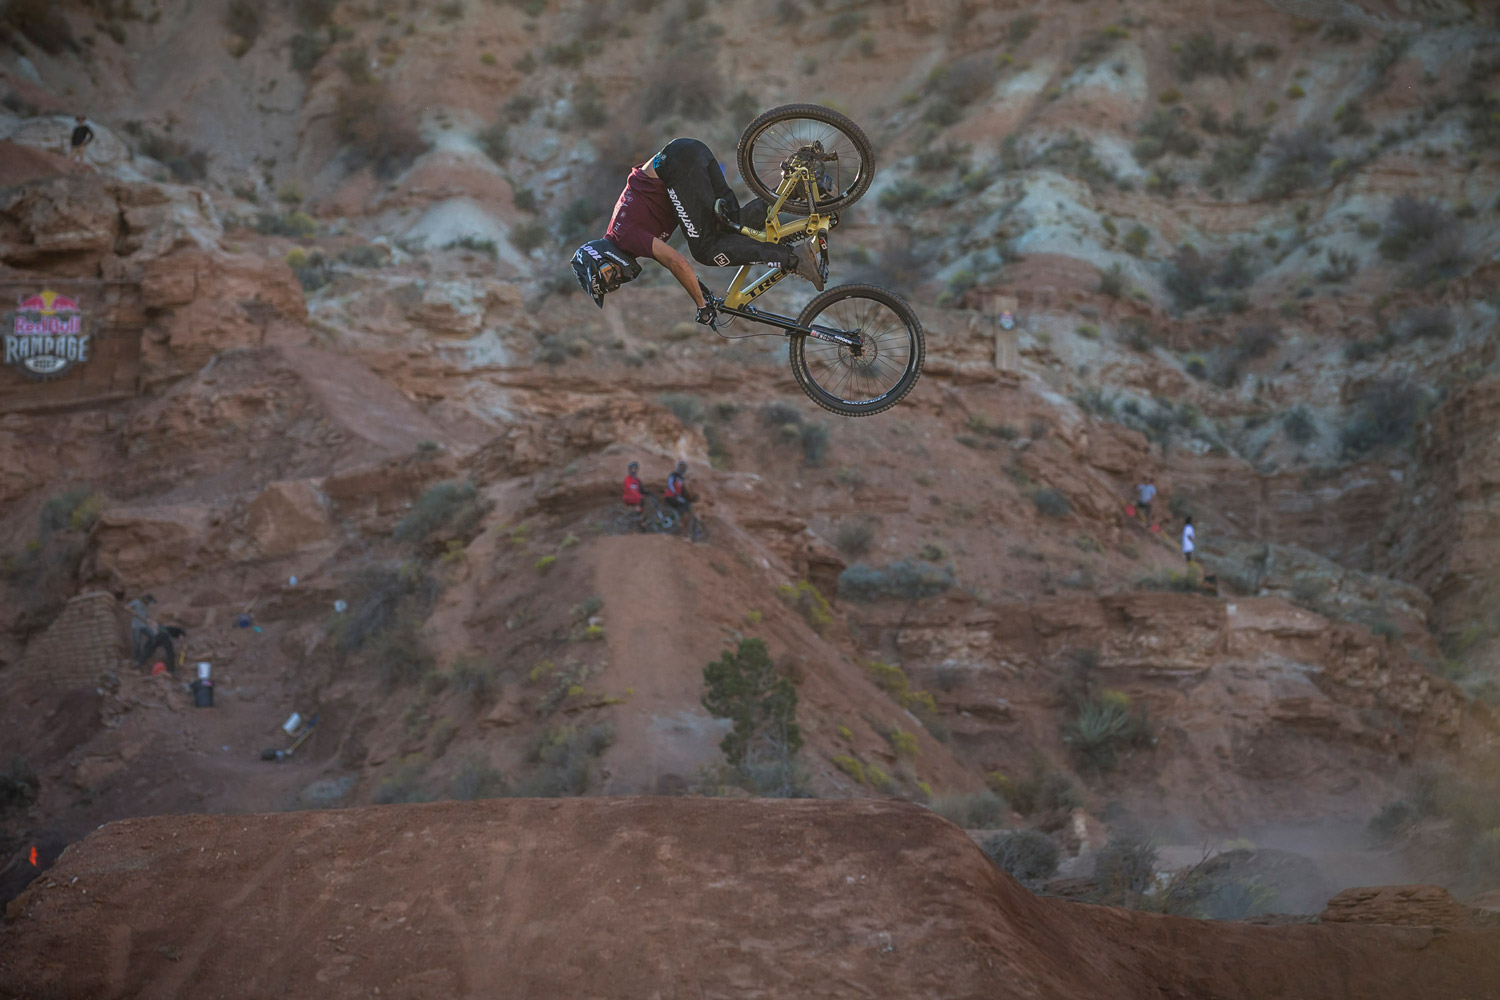 R-Dog at this year's Red Bull Rampage.